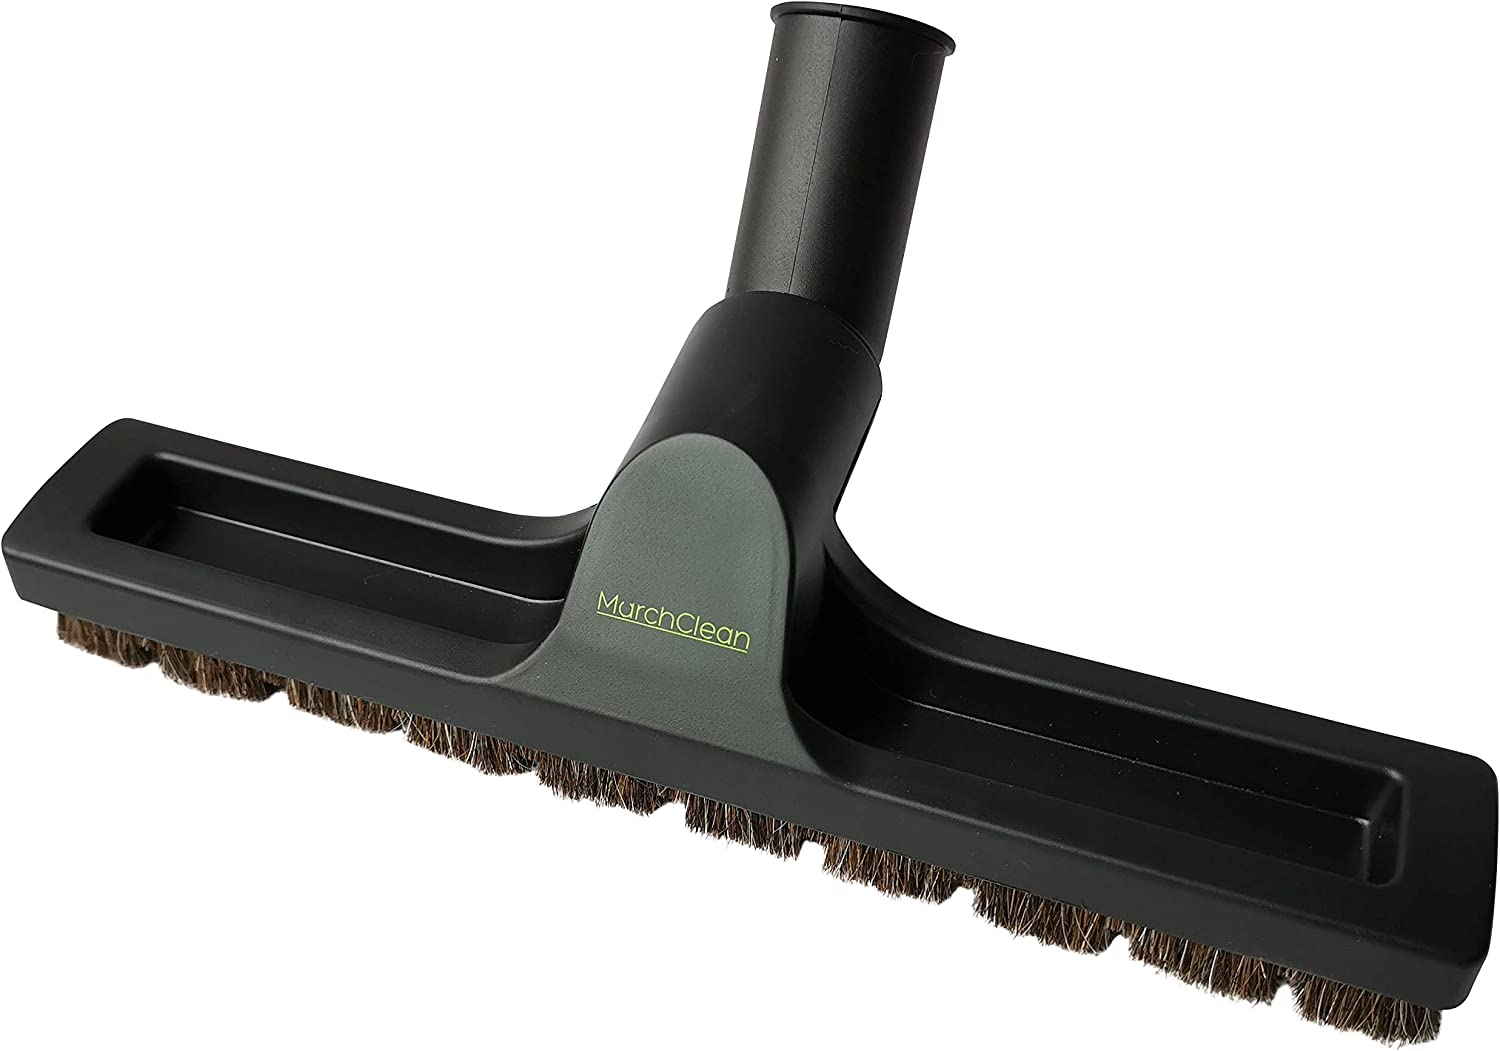 MarchClean Floor Brush Replacement for Most Vacuums